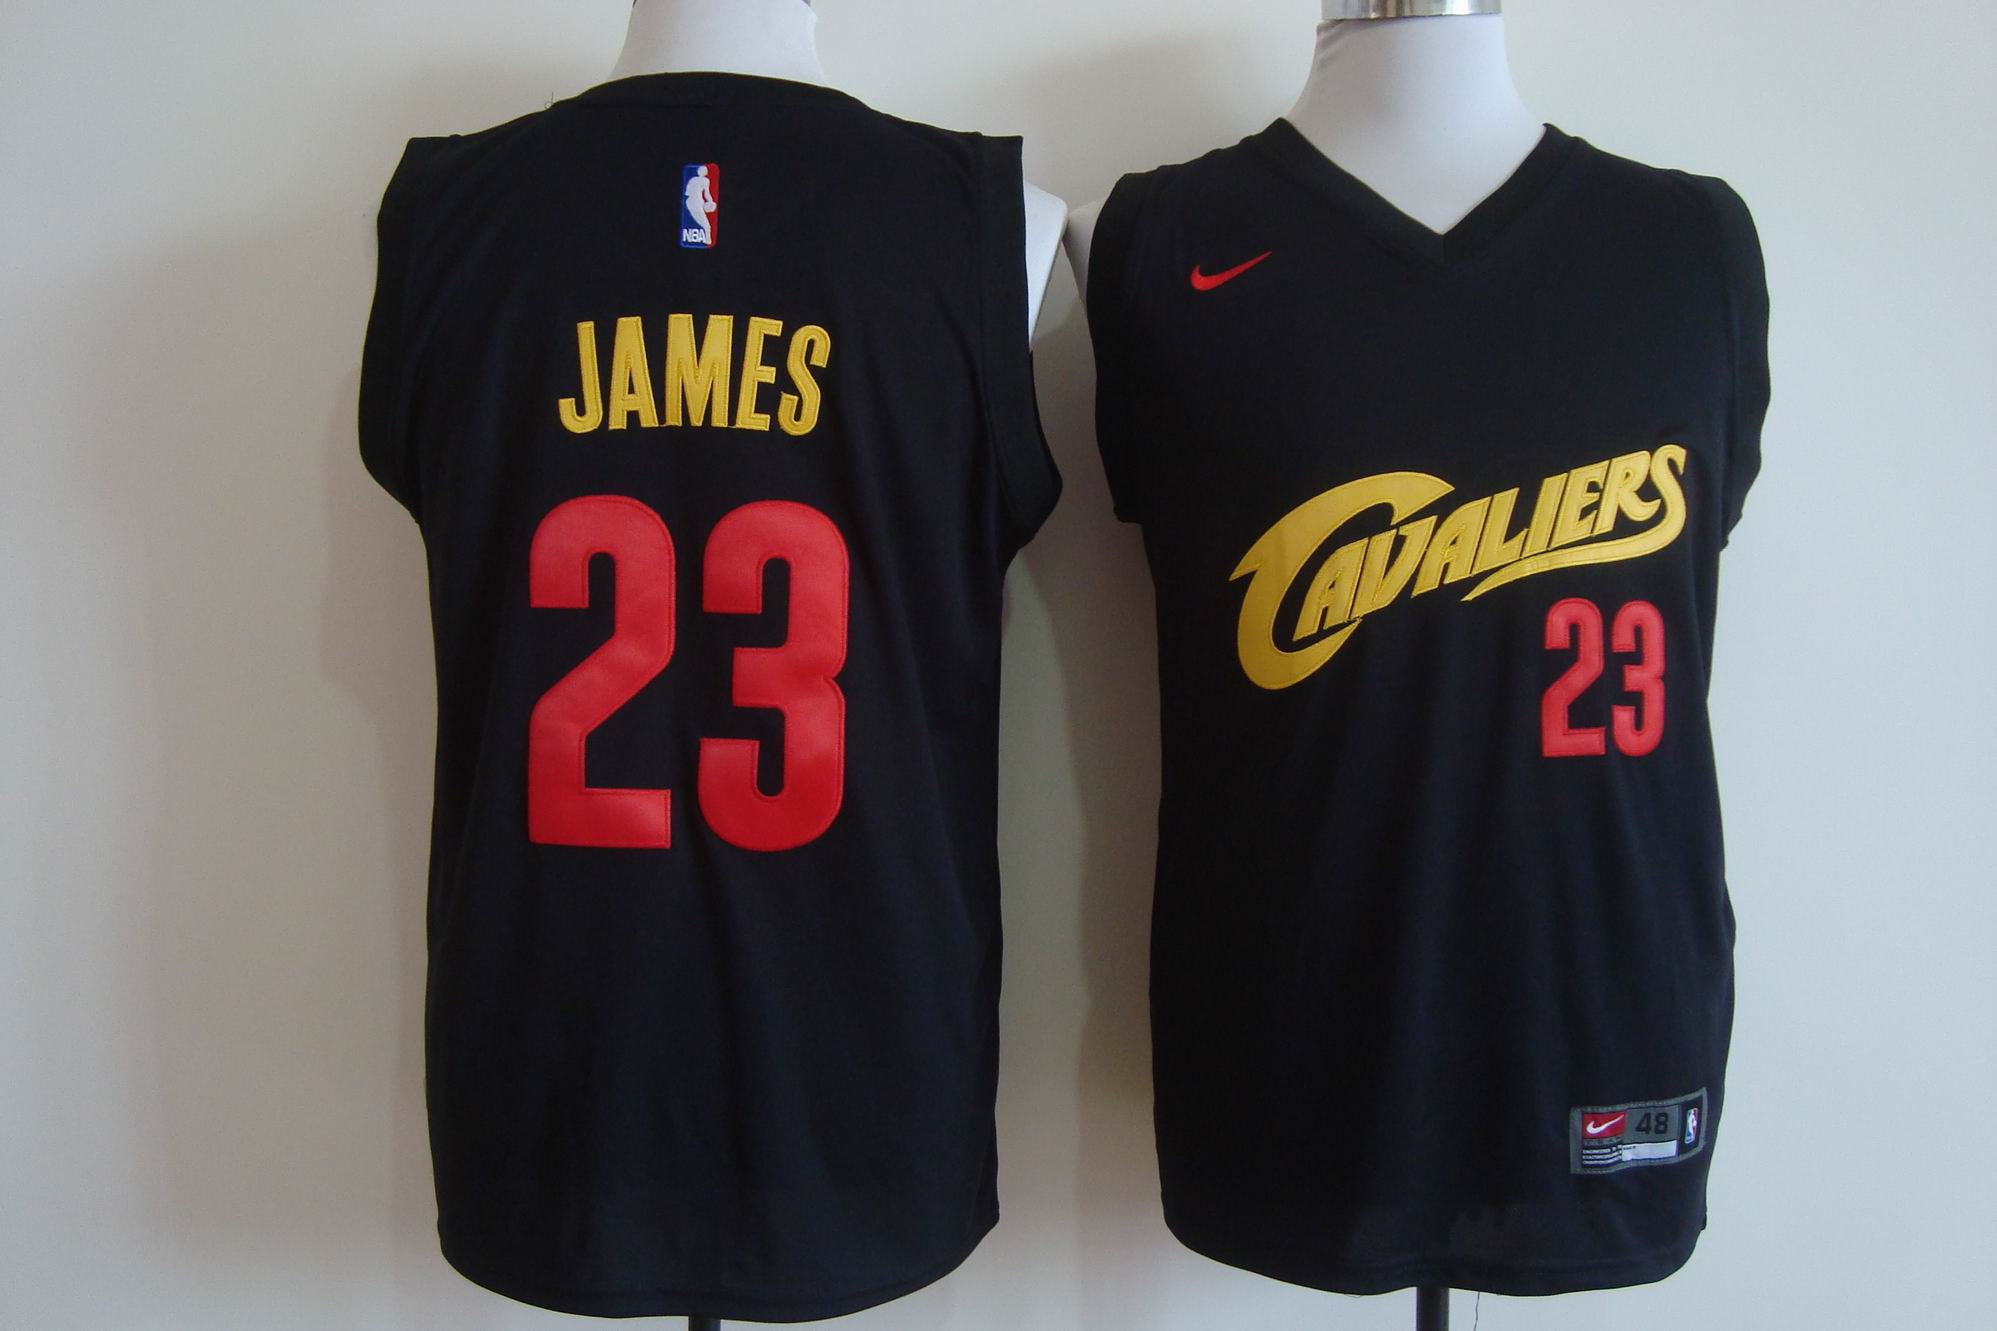 Men's Nike Cleveland Cavaliers #23 LeBron James Black and Red Stitched NBA Jersey